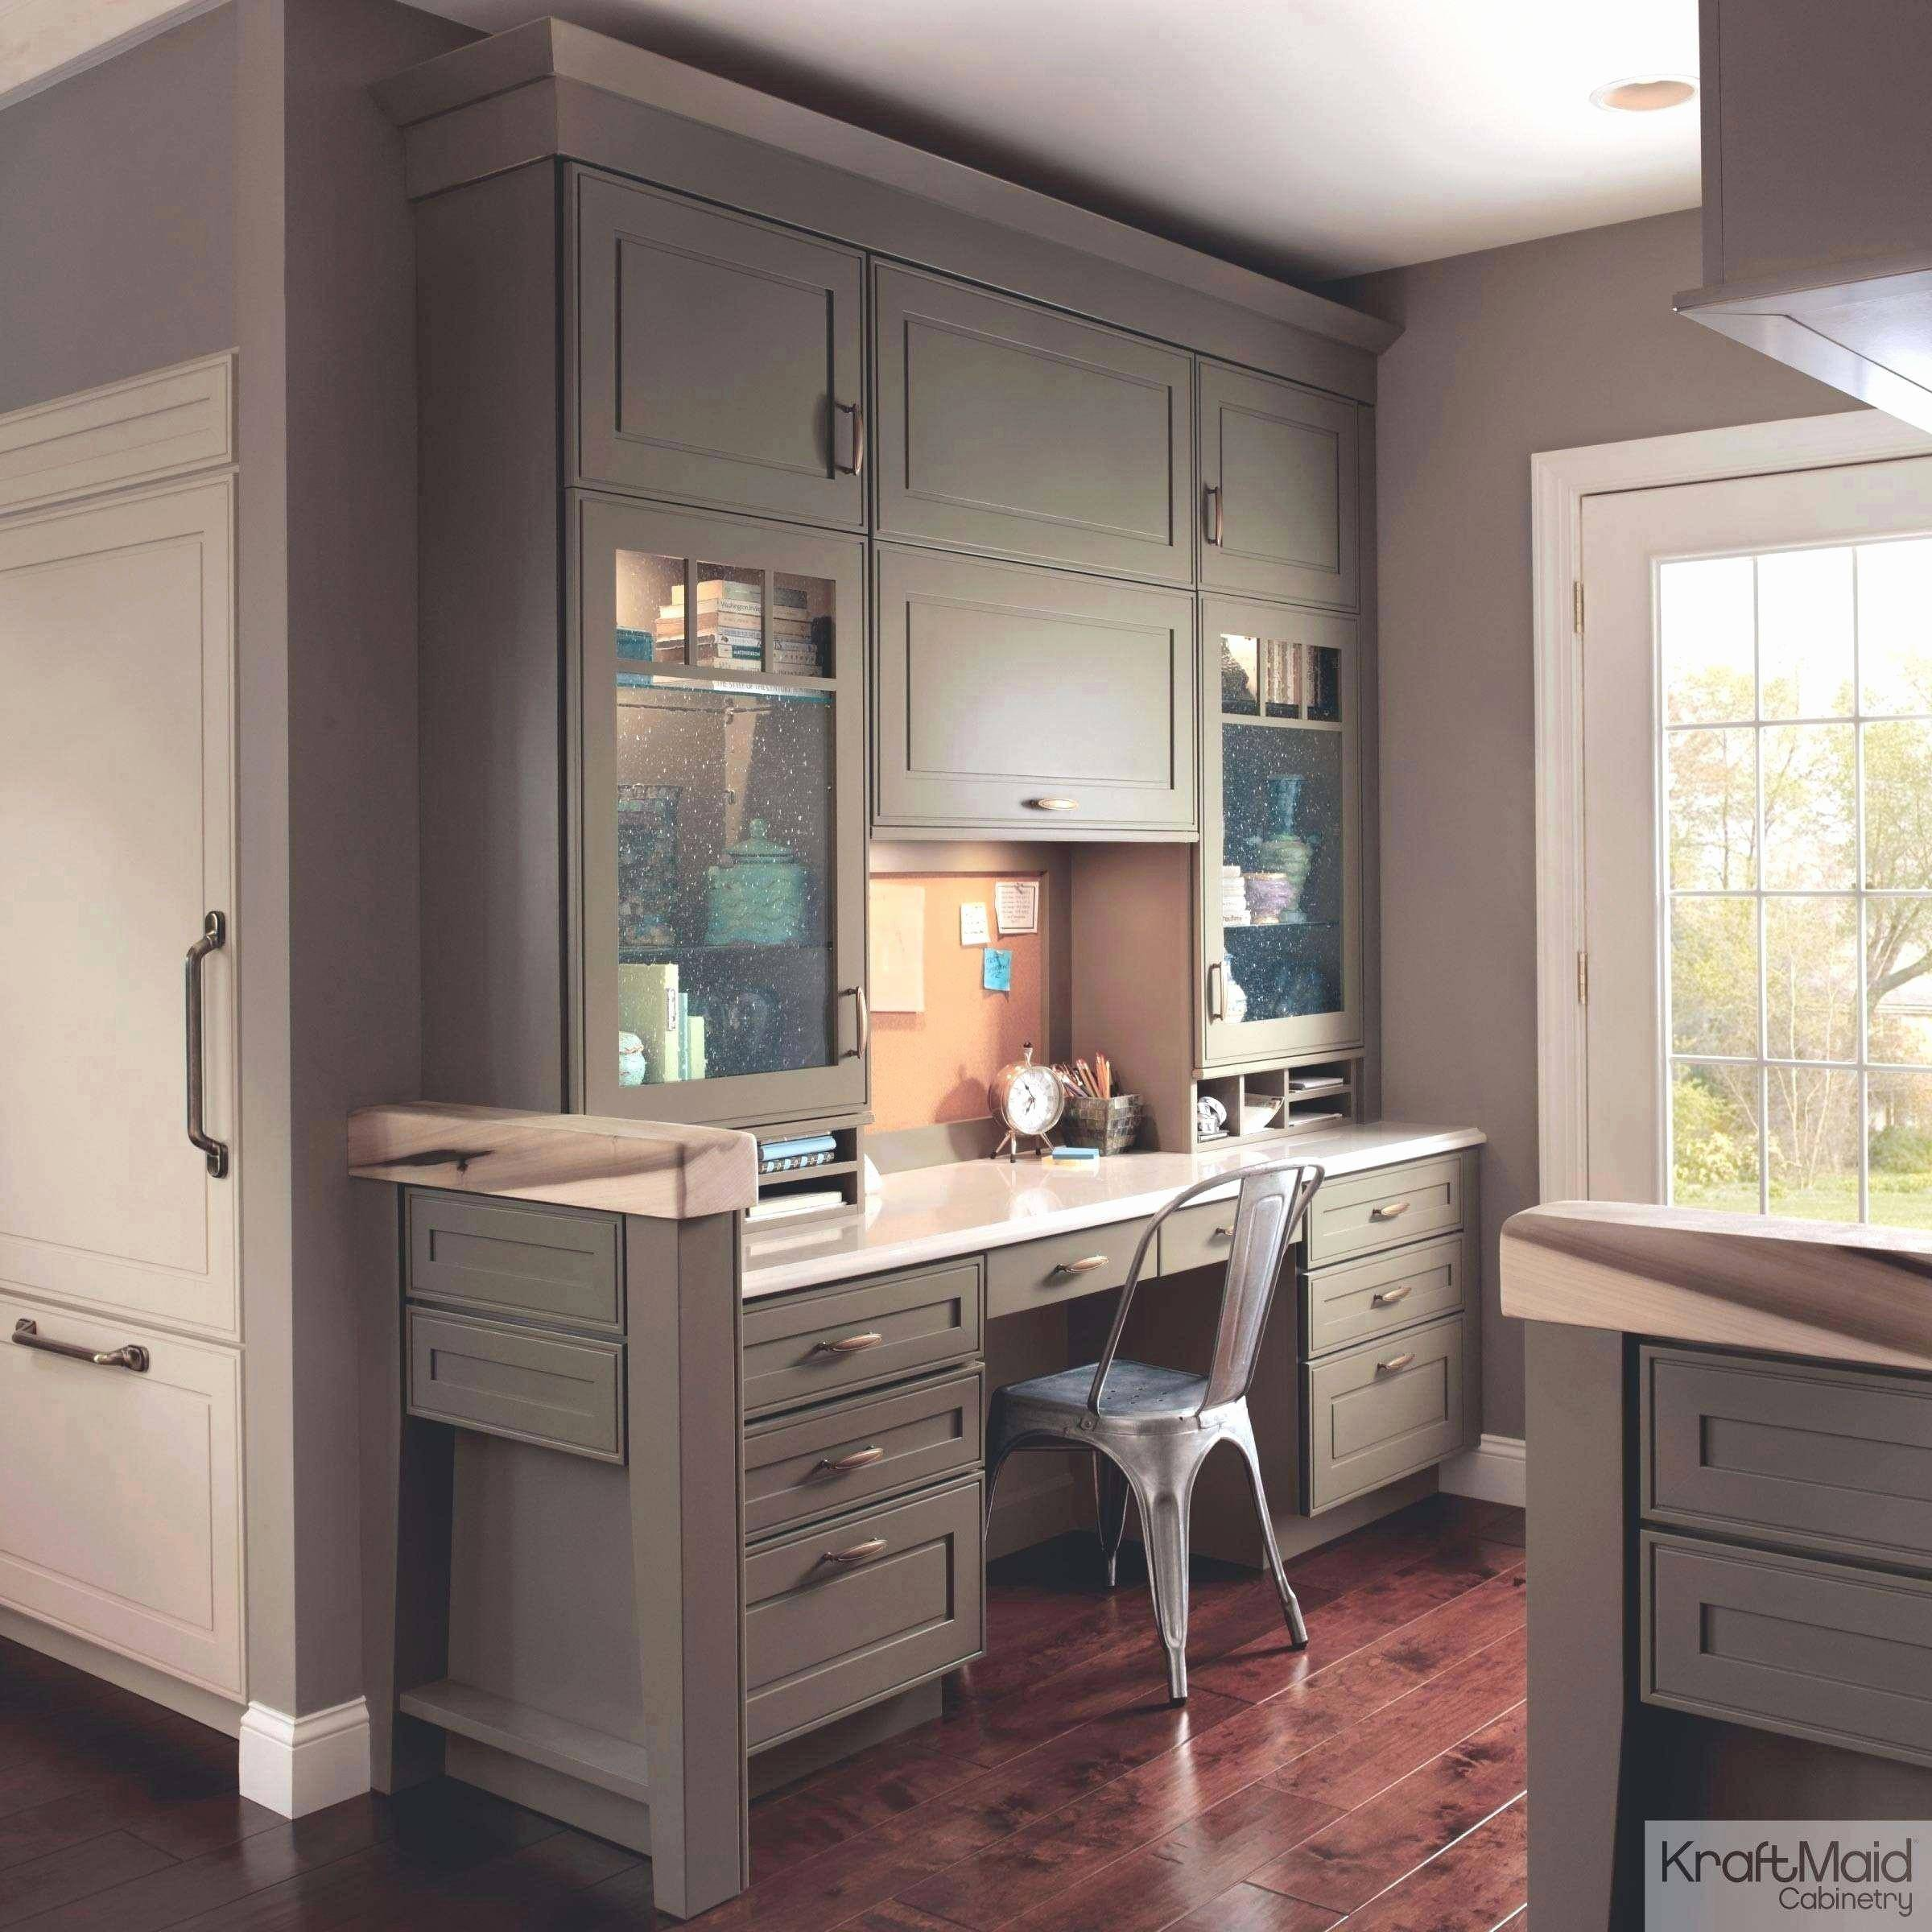 dark hardwood floors with white cabinets of new 30 white kitchens with dark wood floors images within kitchen cabinets with dark wood floors elegant pickled maple kitchen cabinets awesome ki